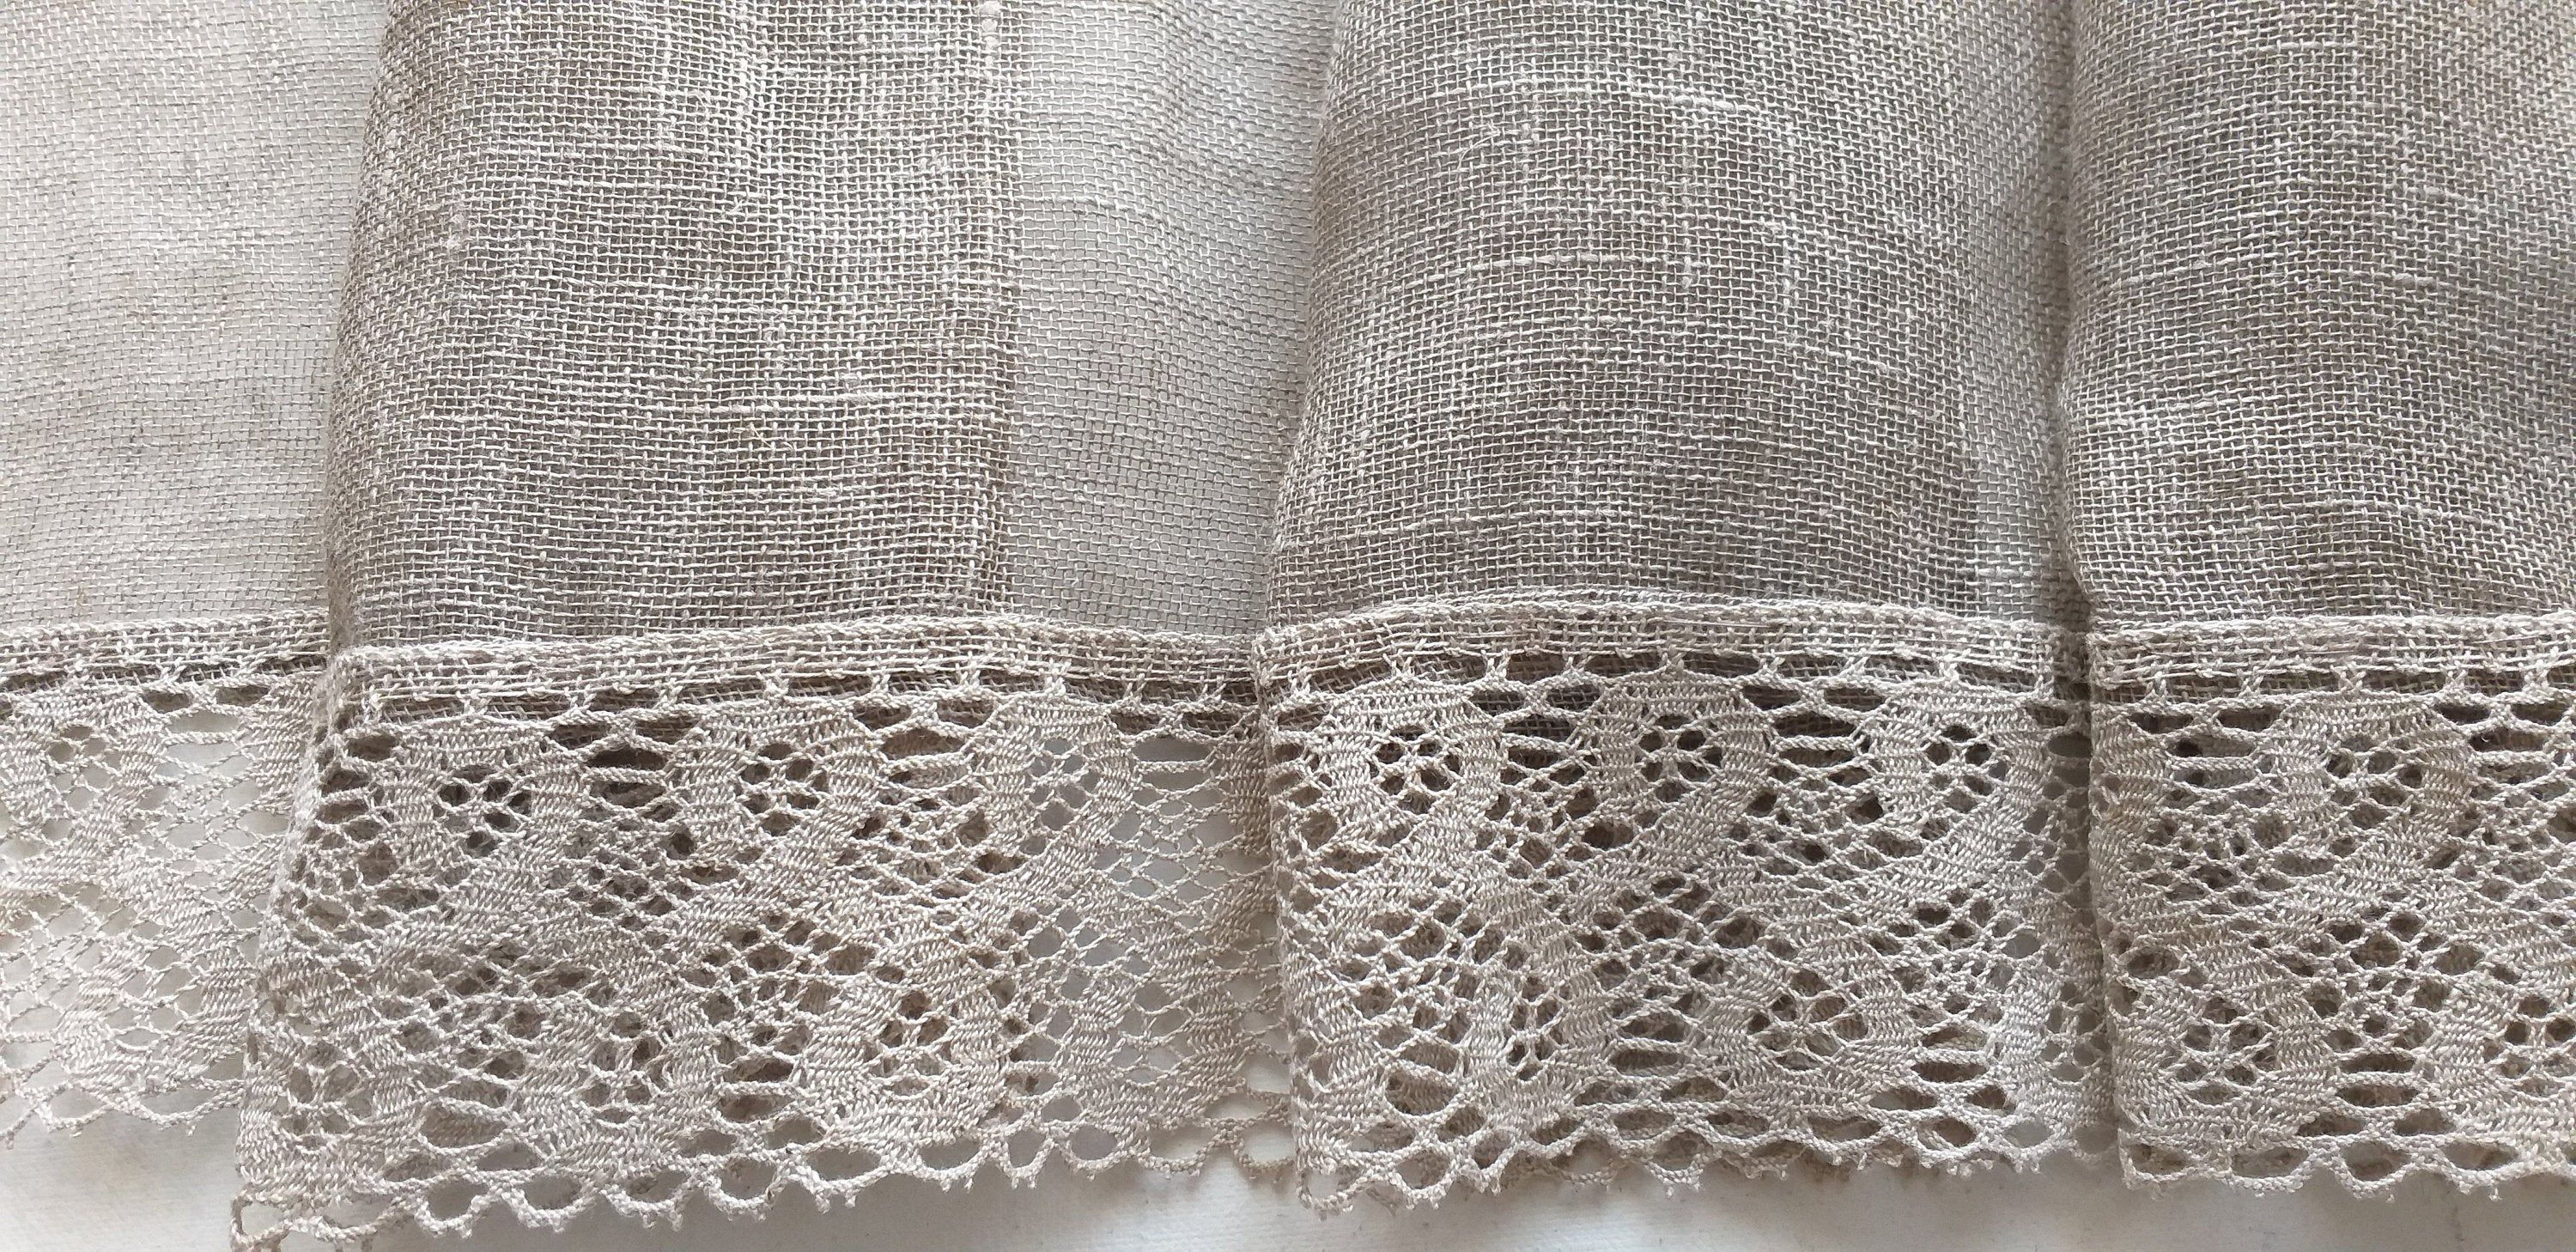 Burlap Linen sheer curtains with lace / Custom curtain panel / Farmhouse curtains / kitchen cafe curtain / Living room curtains #customcurtain  #curtainsideasluxury  #curtainsstyles #livingroomdecor #linen #kitchendecor #kitchencurtains #linencurtains